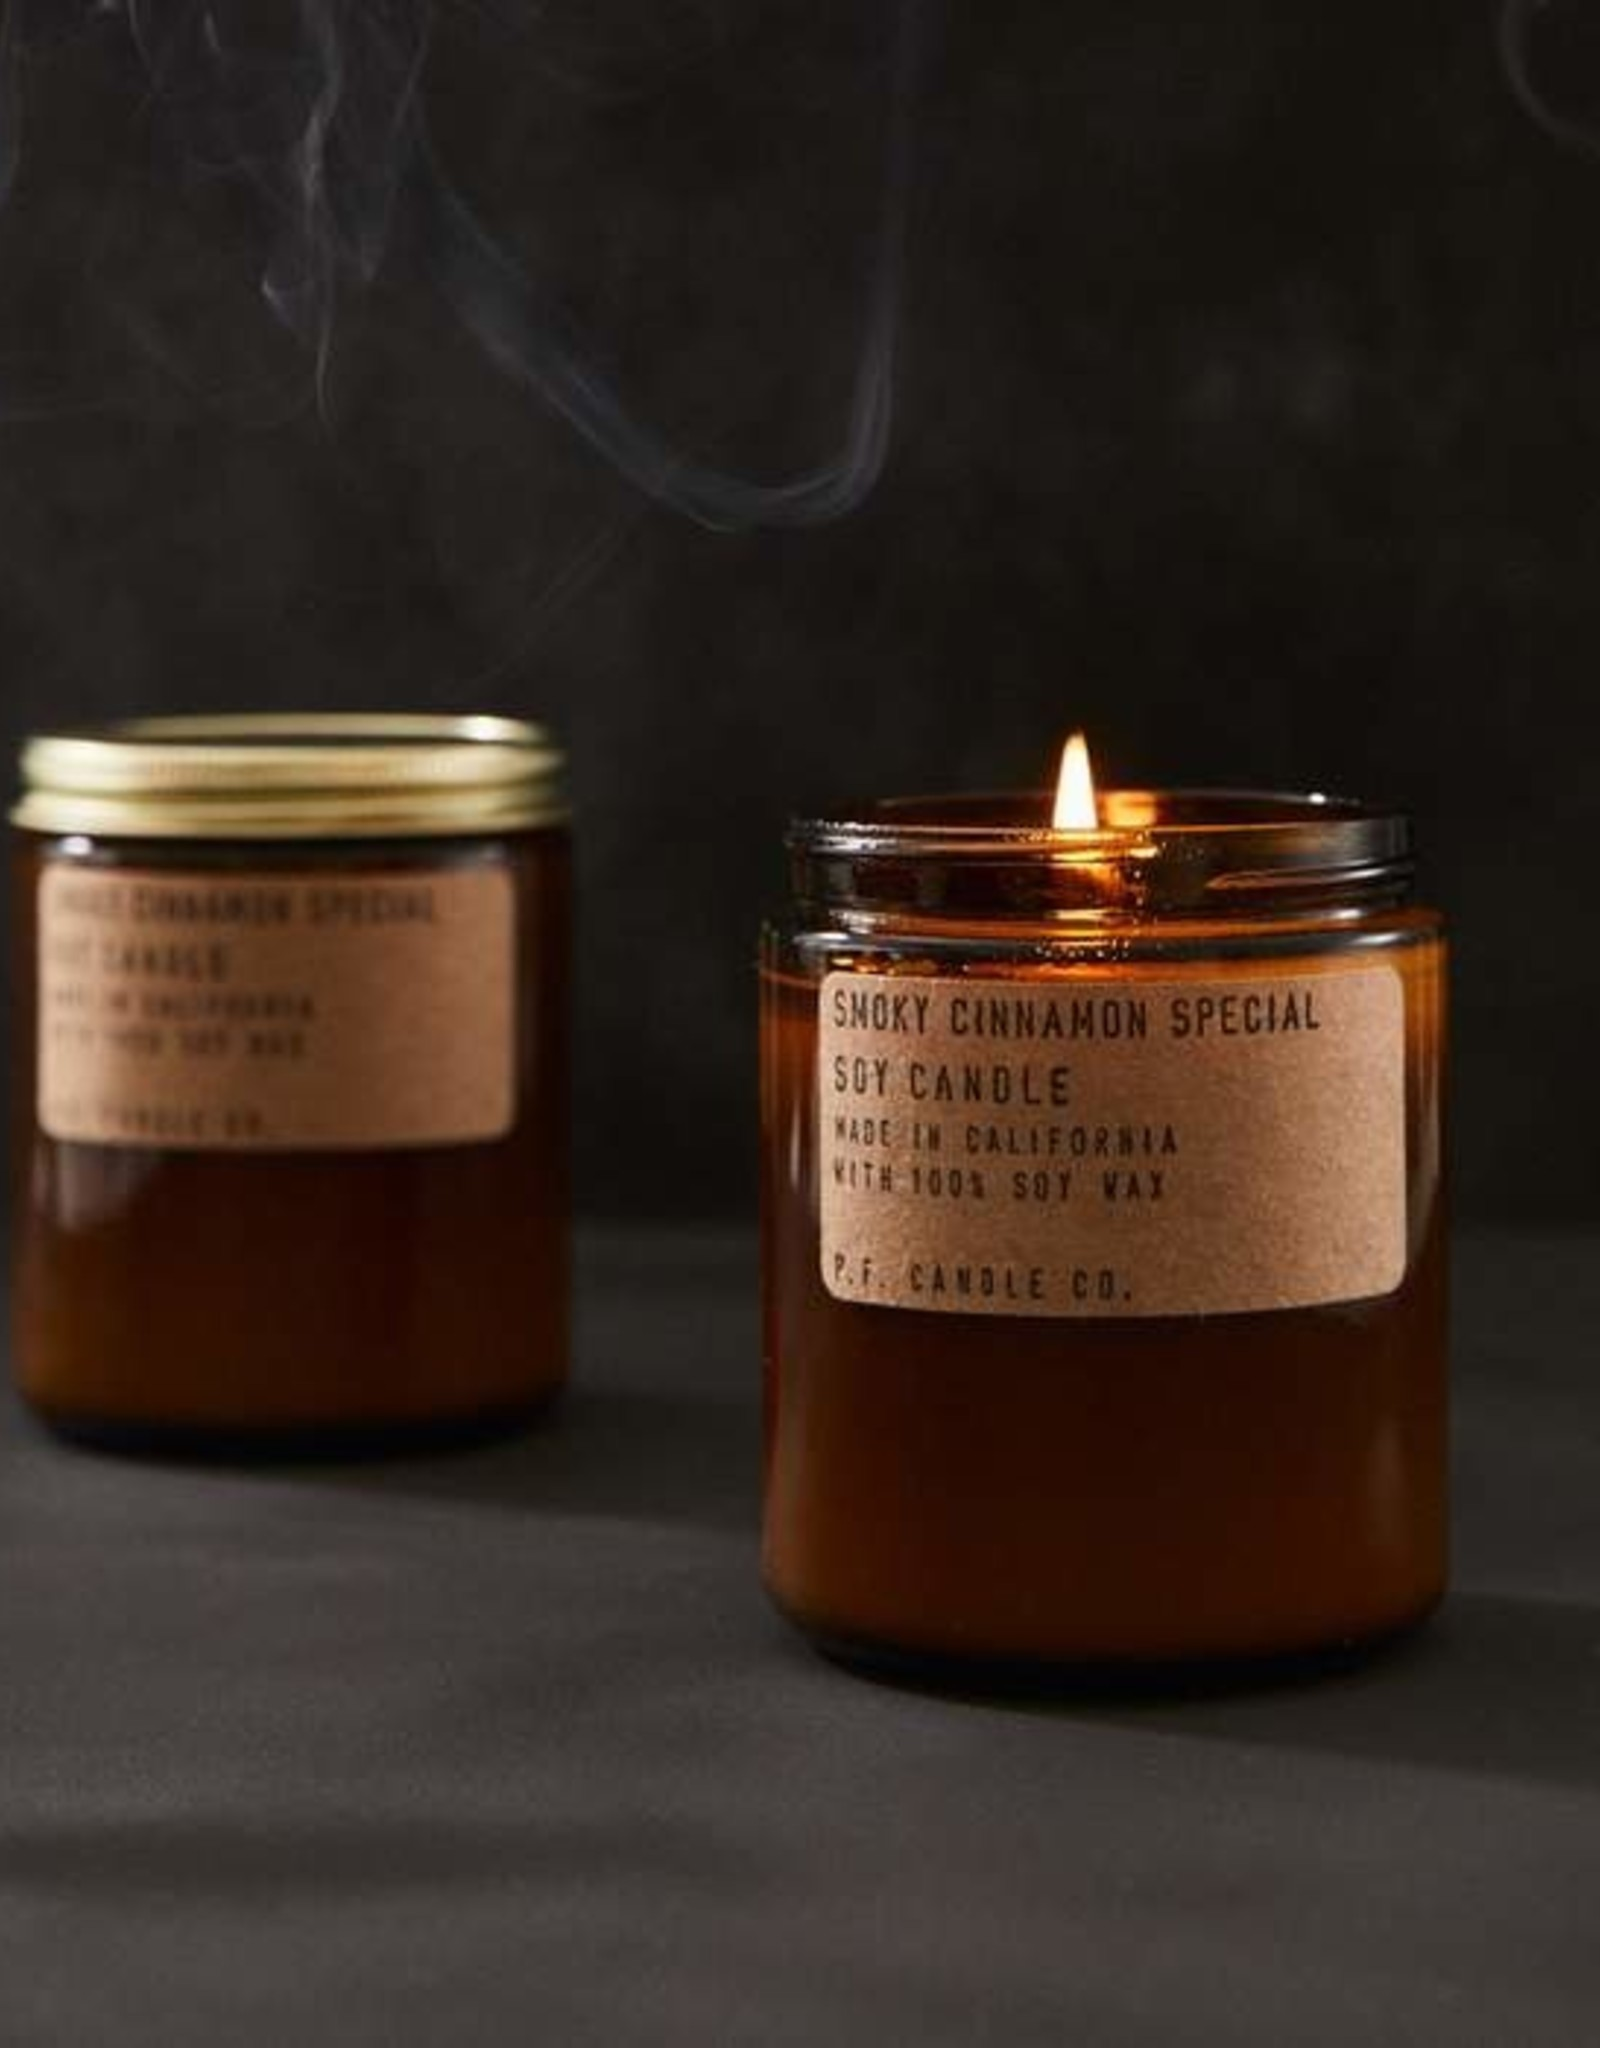 P.F. Candle Co. Smoky Cinnamon Special Soy Candle - 7.2 oz